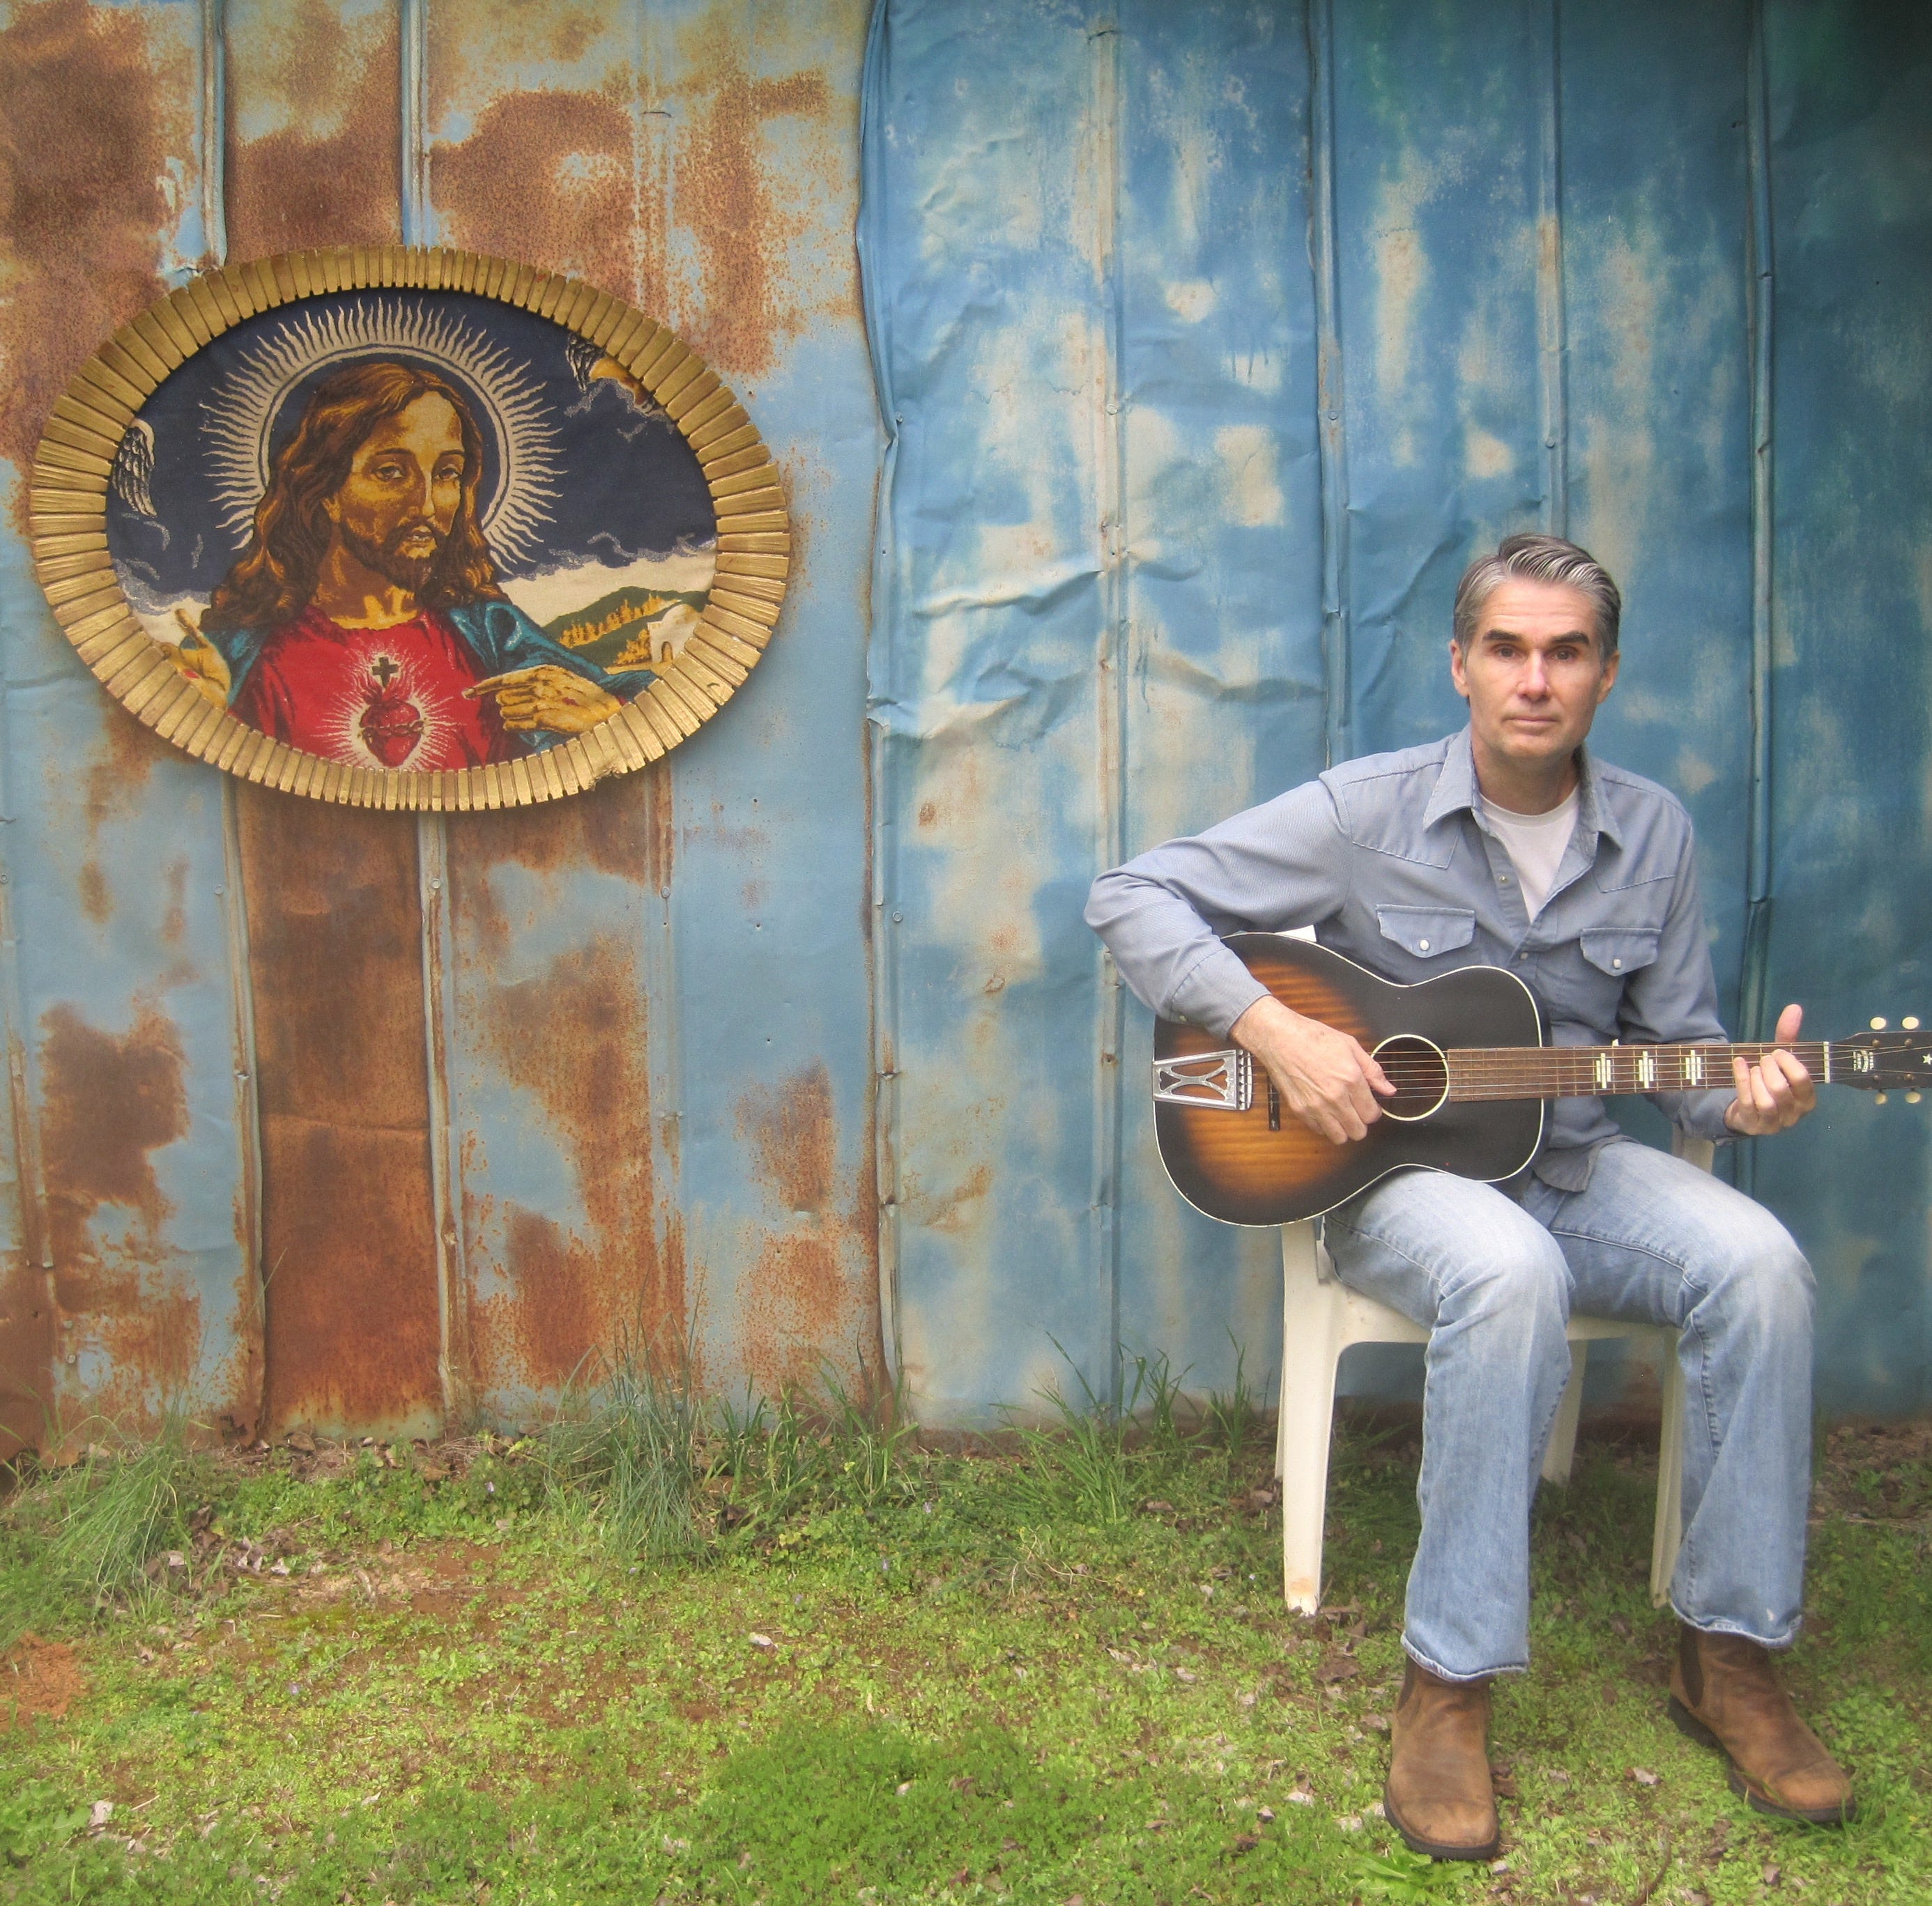 Jim White brings new album, 'Waffles, Triangles & Jesus,' to Sopchoppy | Music roundup